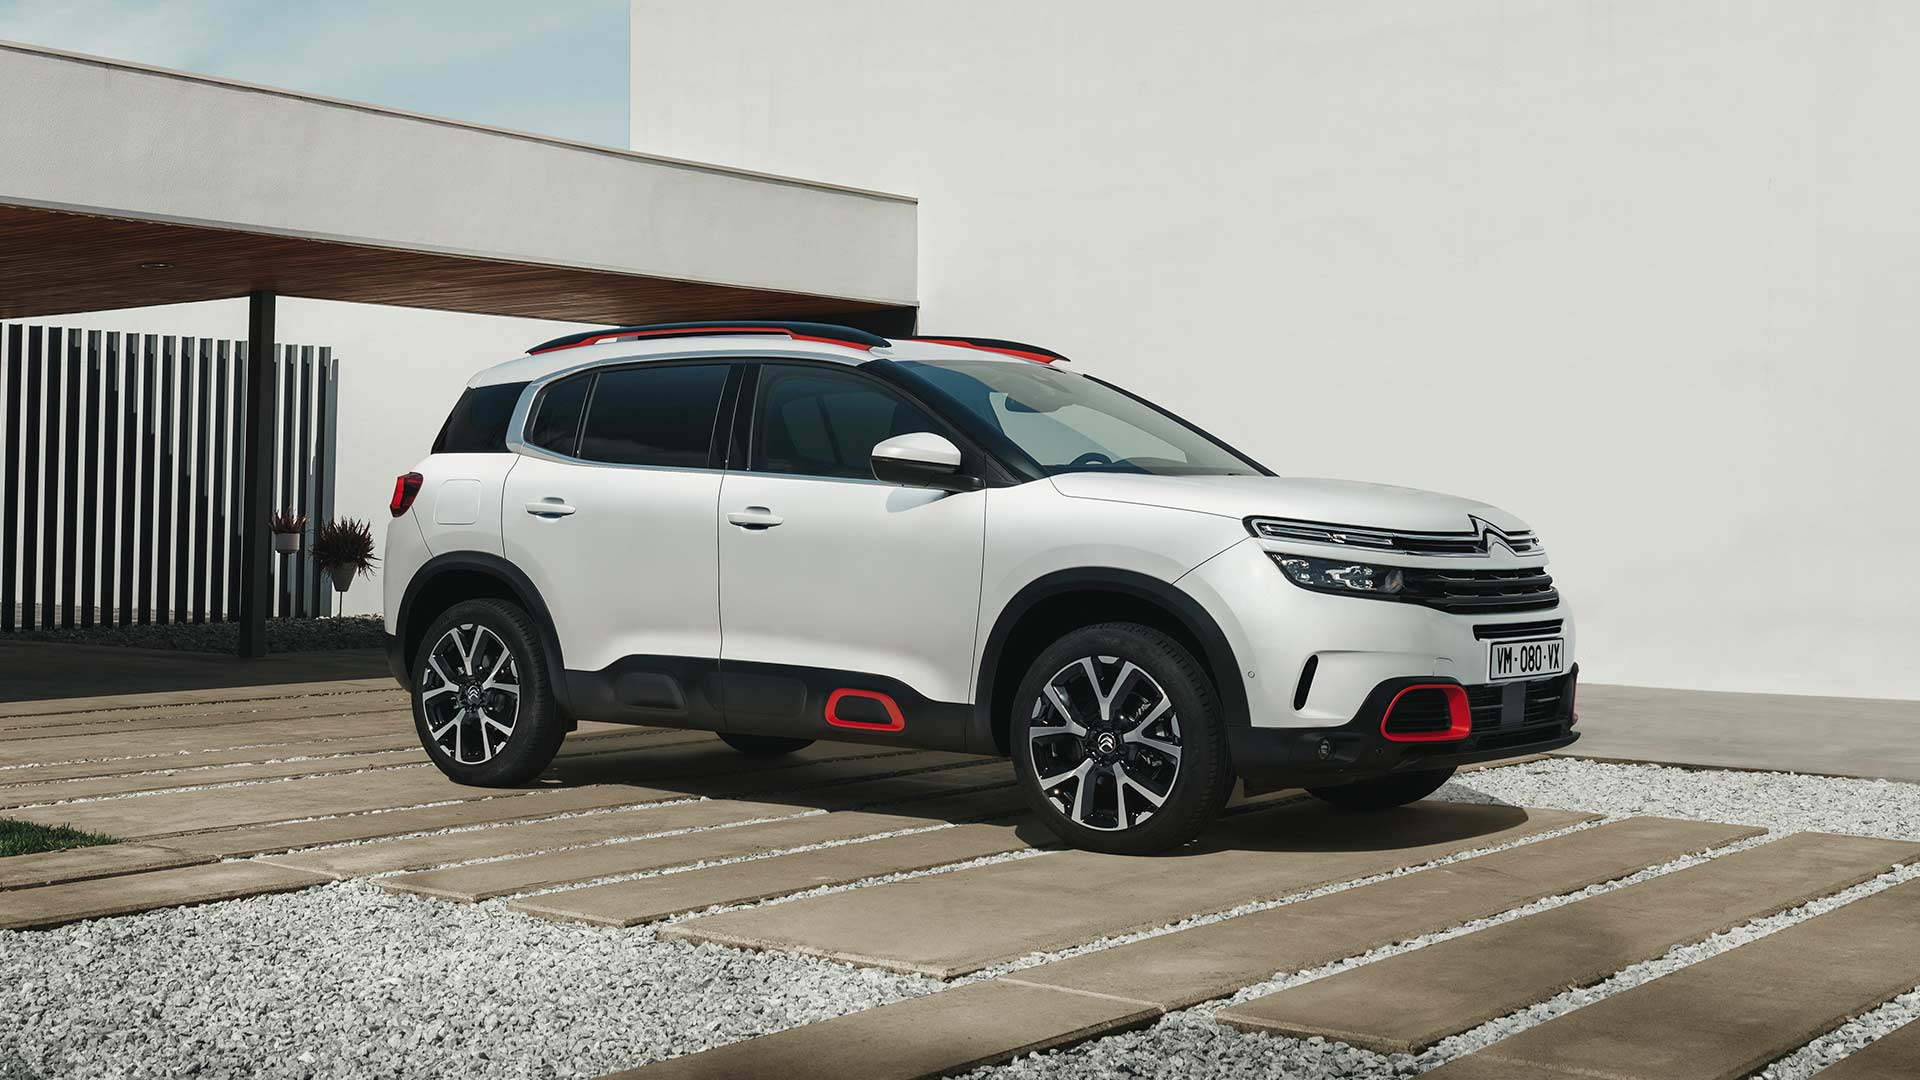 citroen c5 aircross revealed for europe autodevot. Black Bedroom Furniture Sets. Home Design Ideas